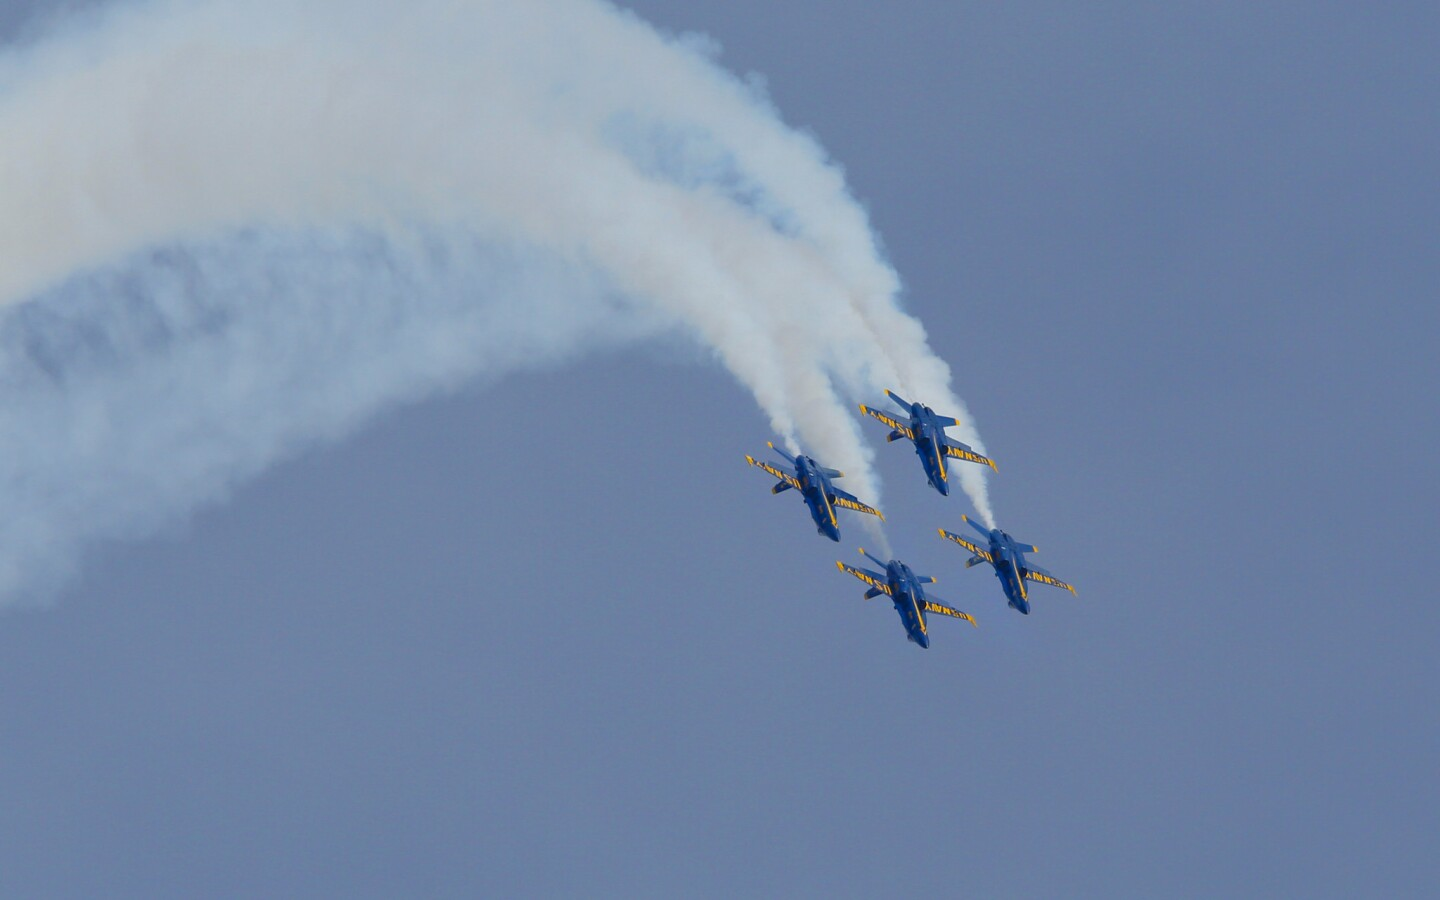 The U.S. Navy's Blue Angels during their performance demonstration at Miramar Air Show 2018.